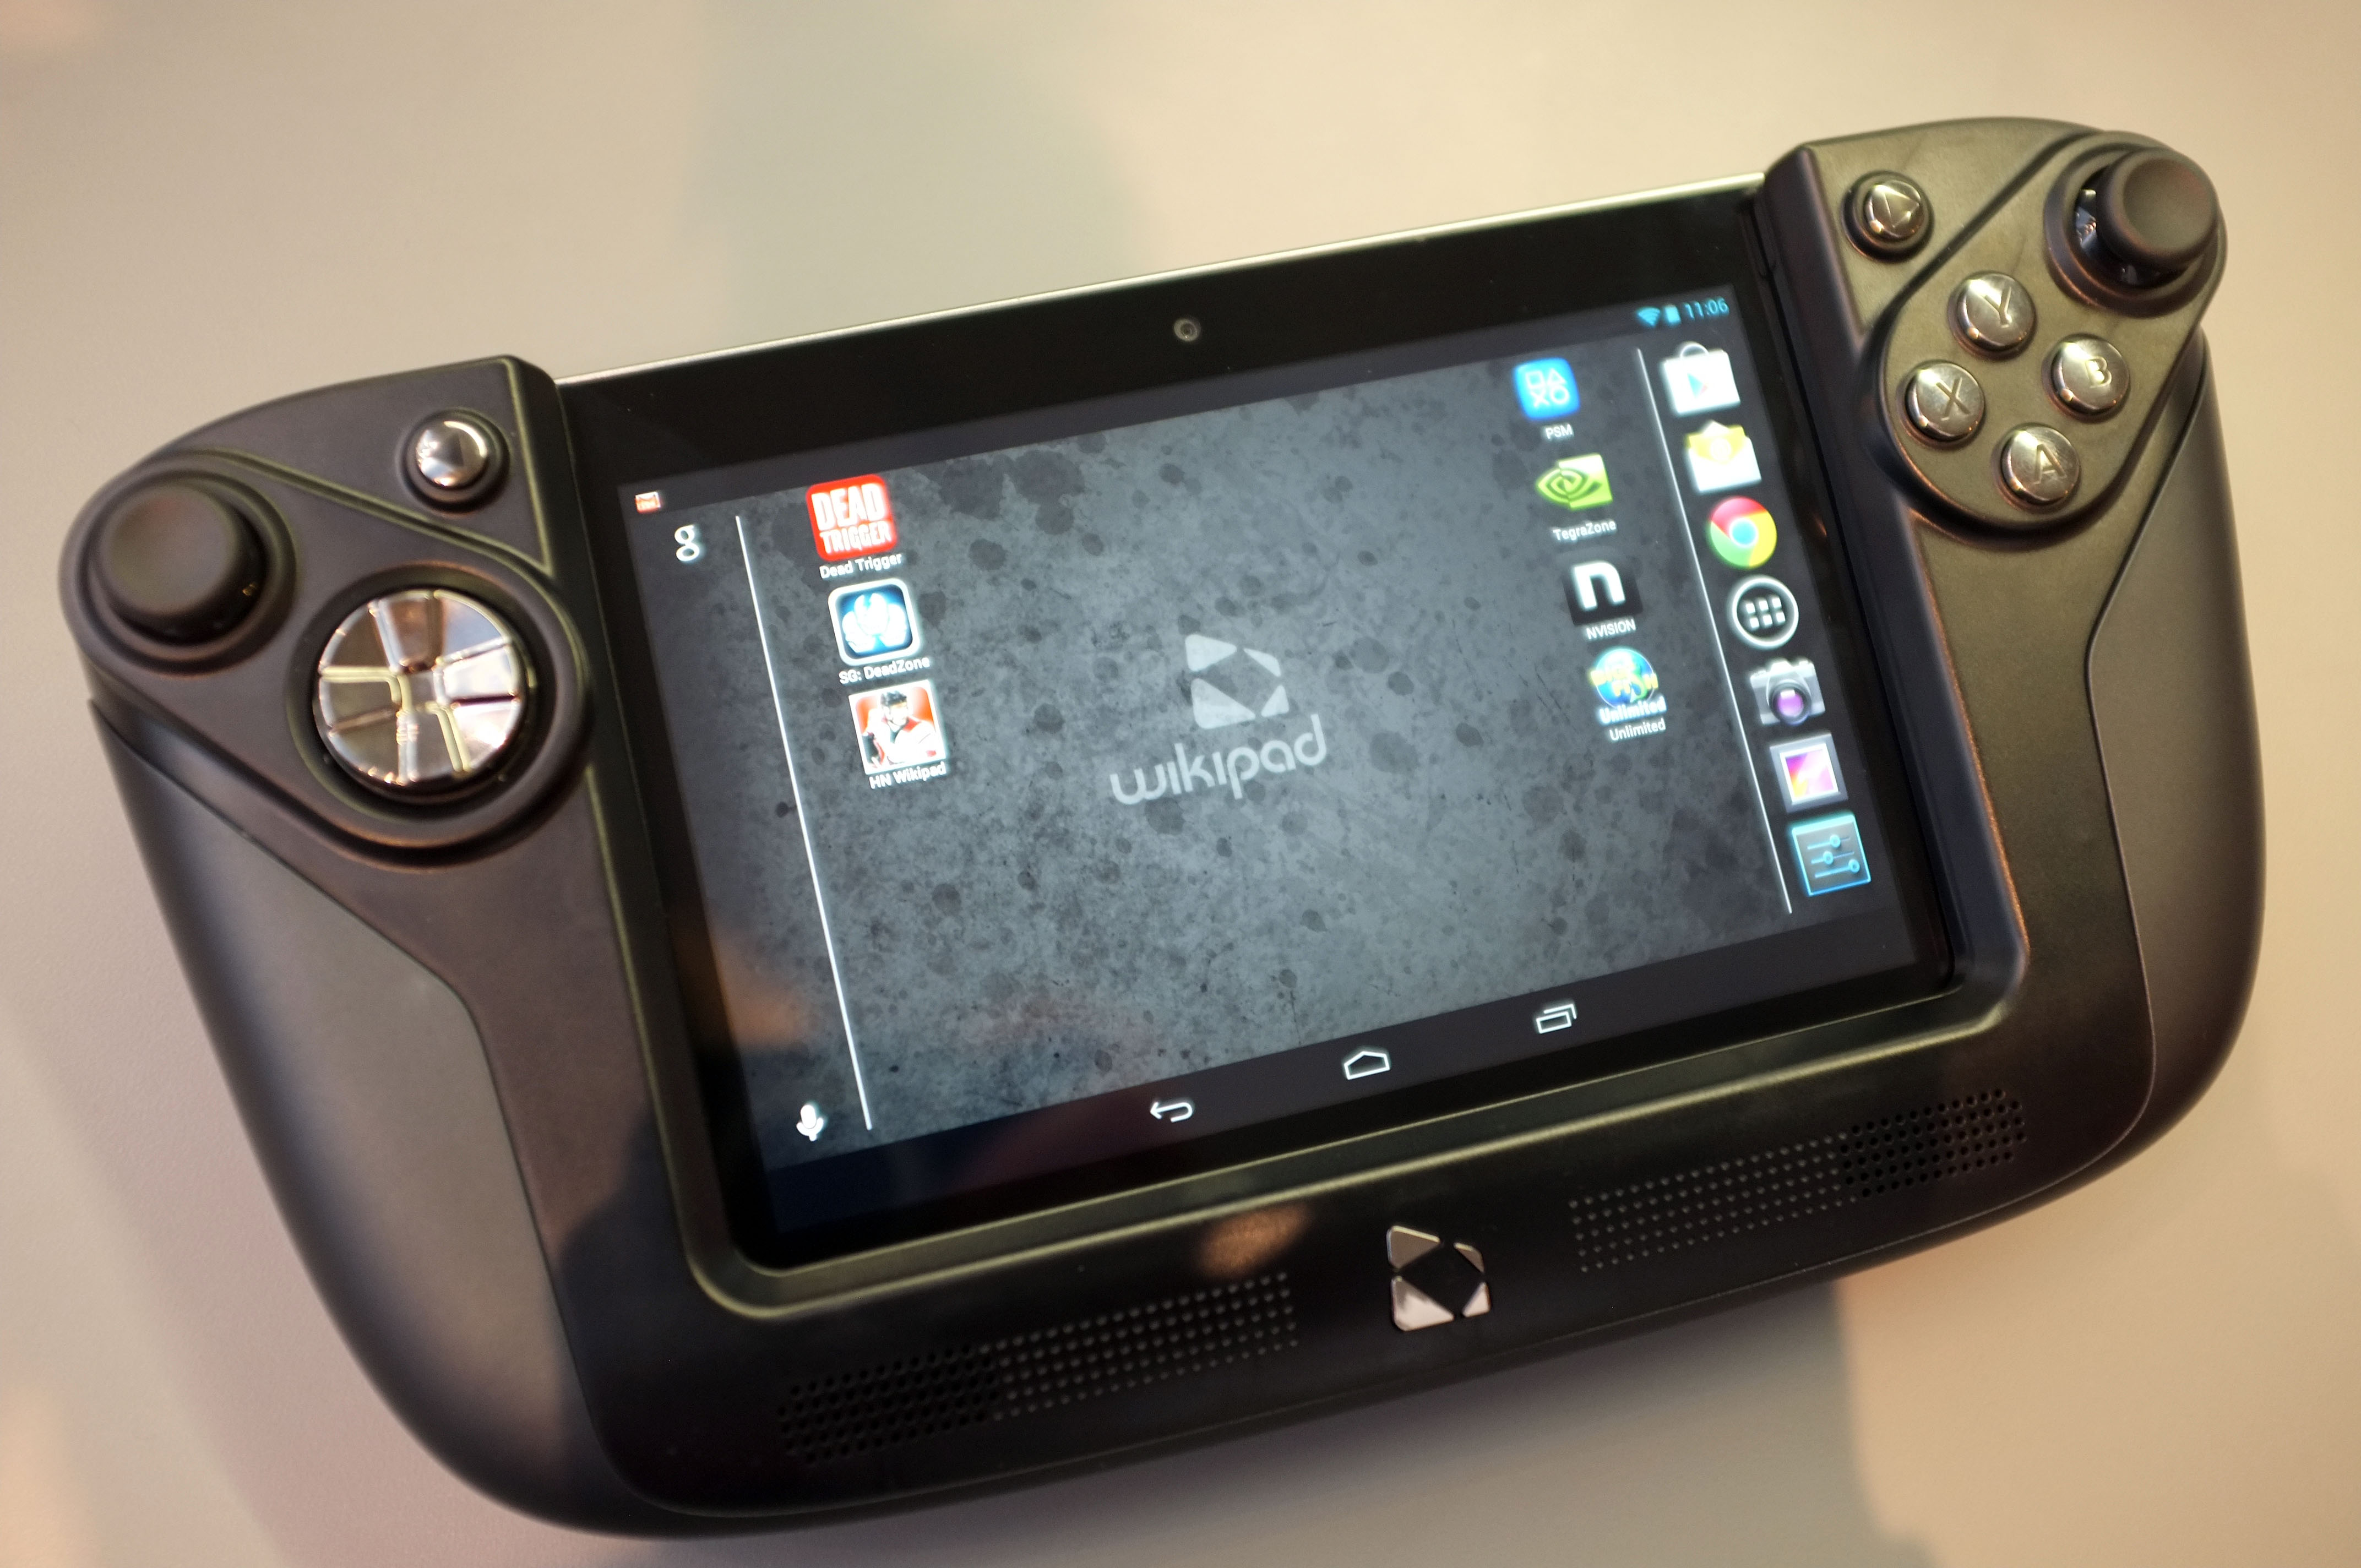 $249 Wikipad Android unconsole launches 11 June in US